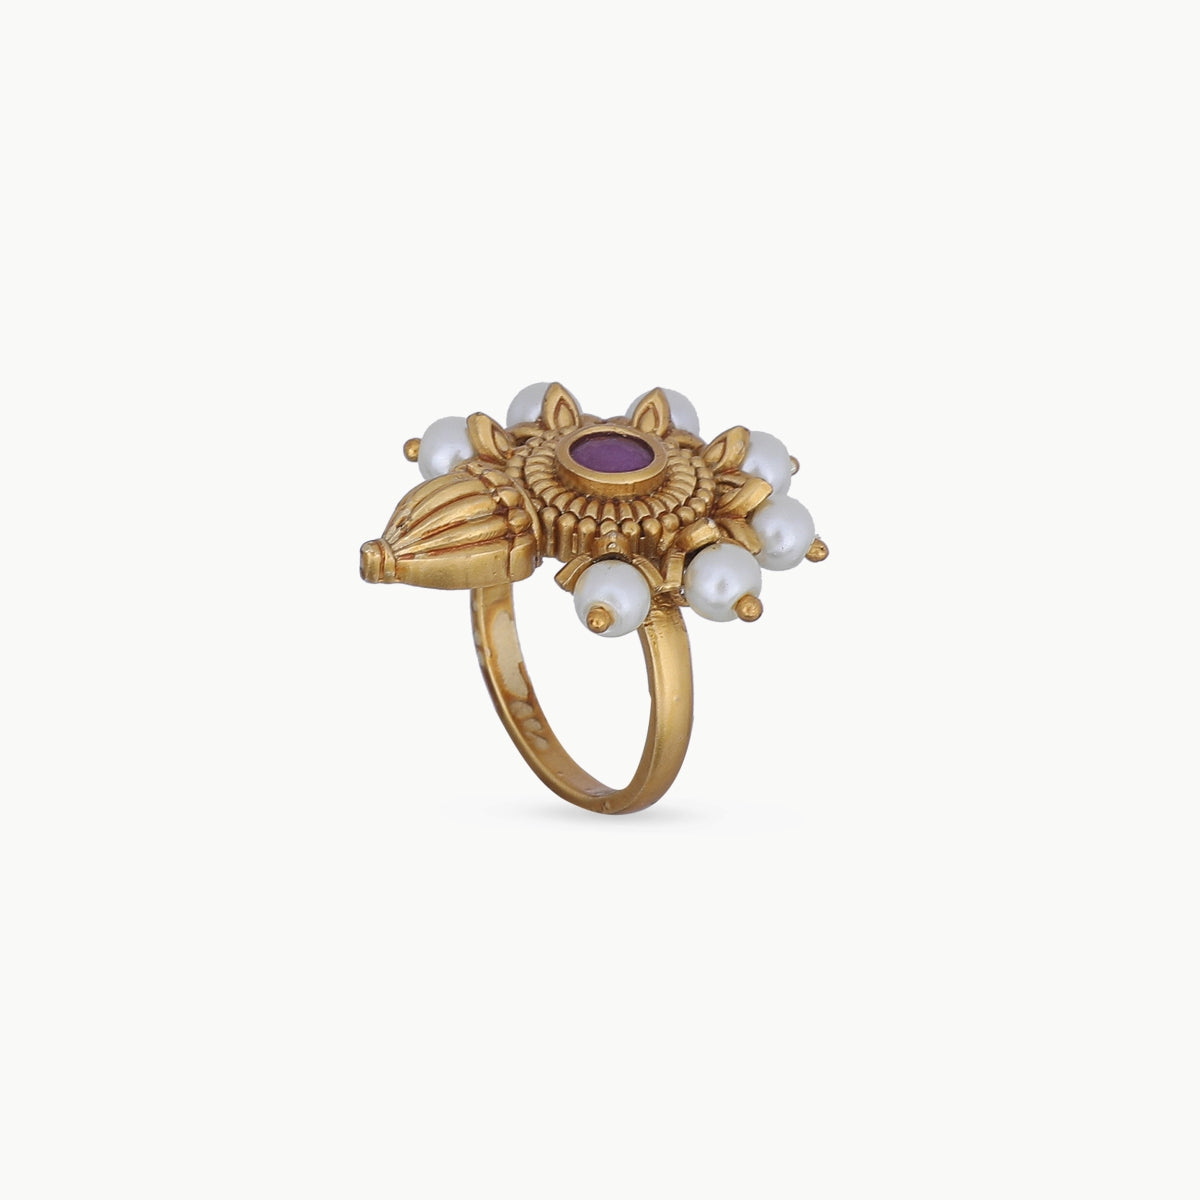 Hania Antique Ring